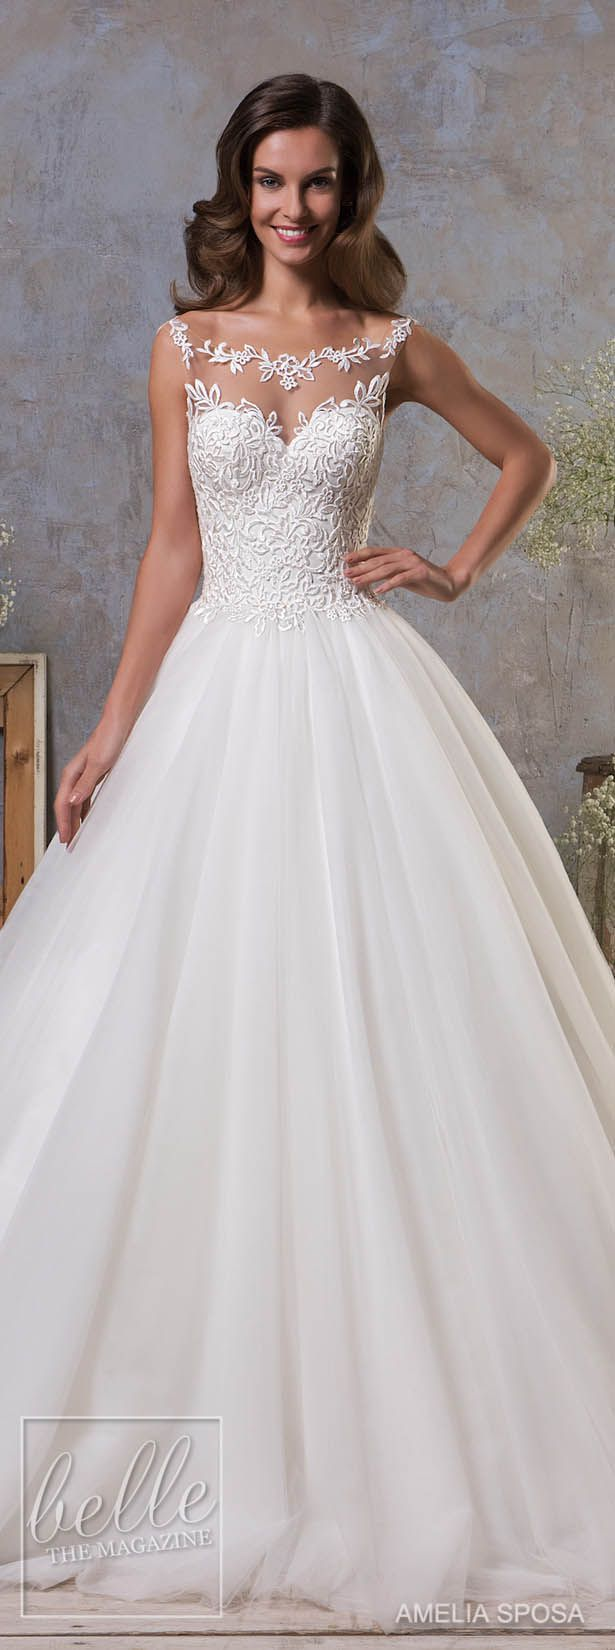 The 25 Best Puffy Wedding Dresses Ideas On Pinterest